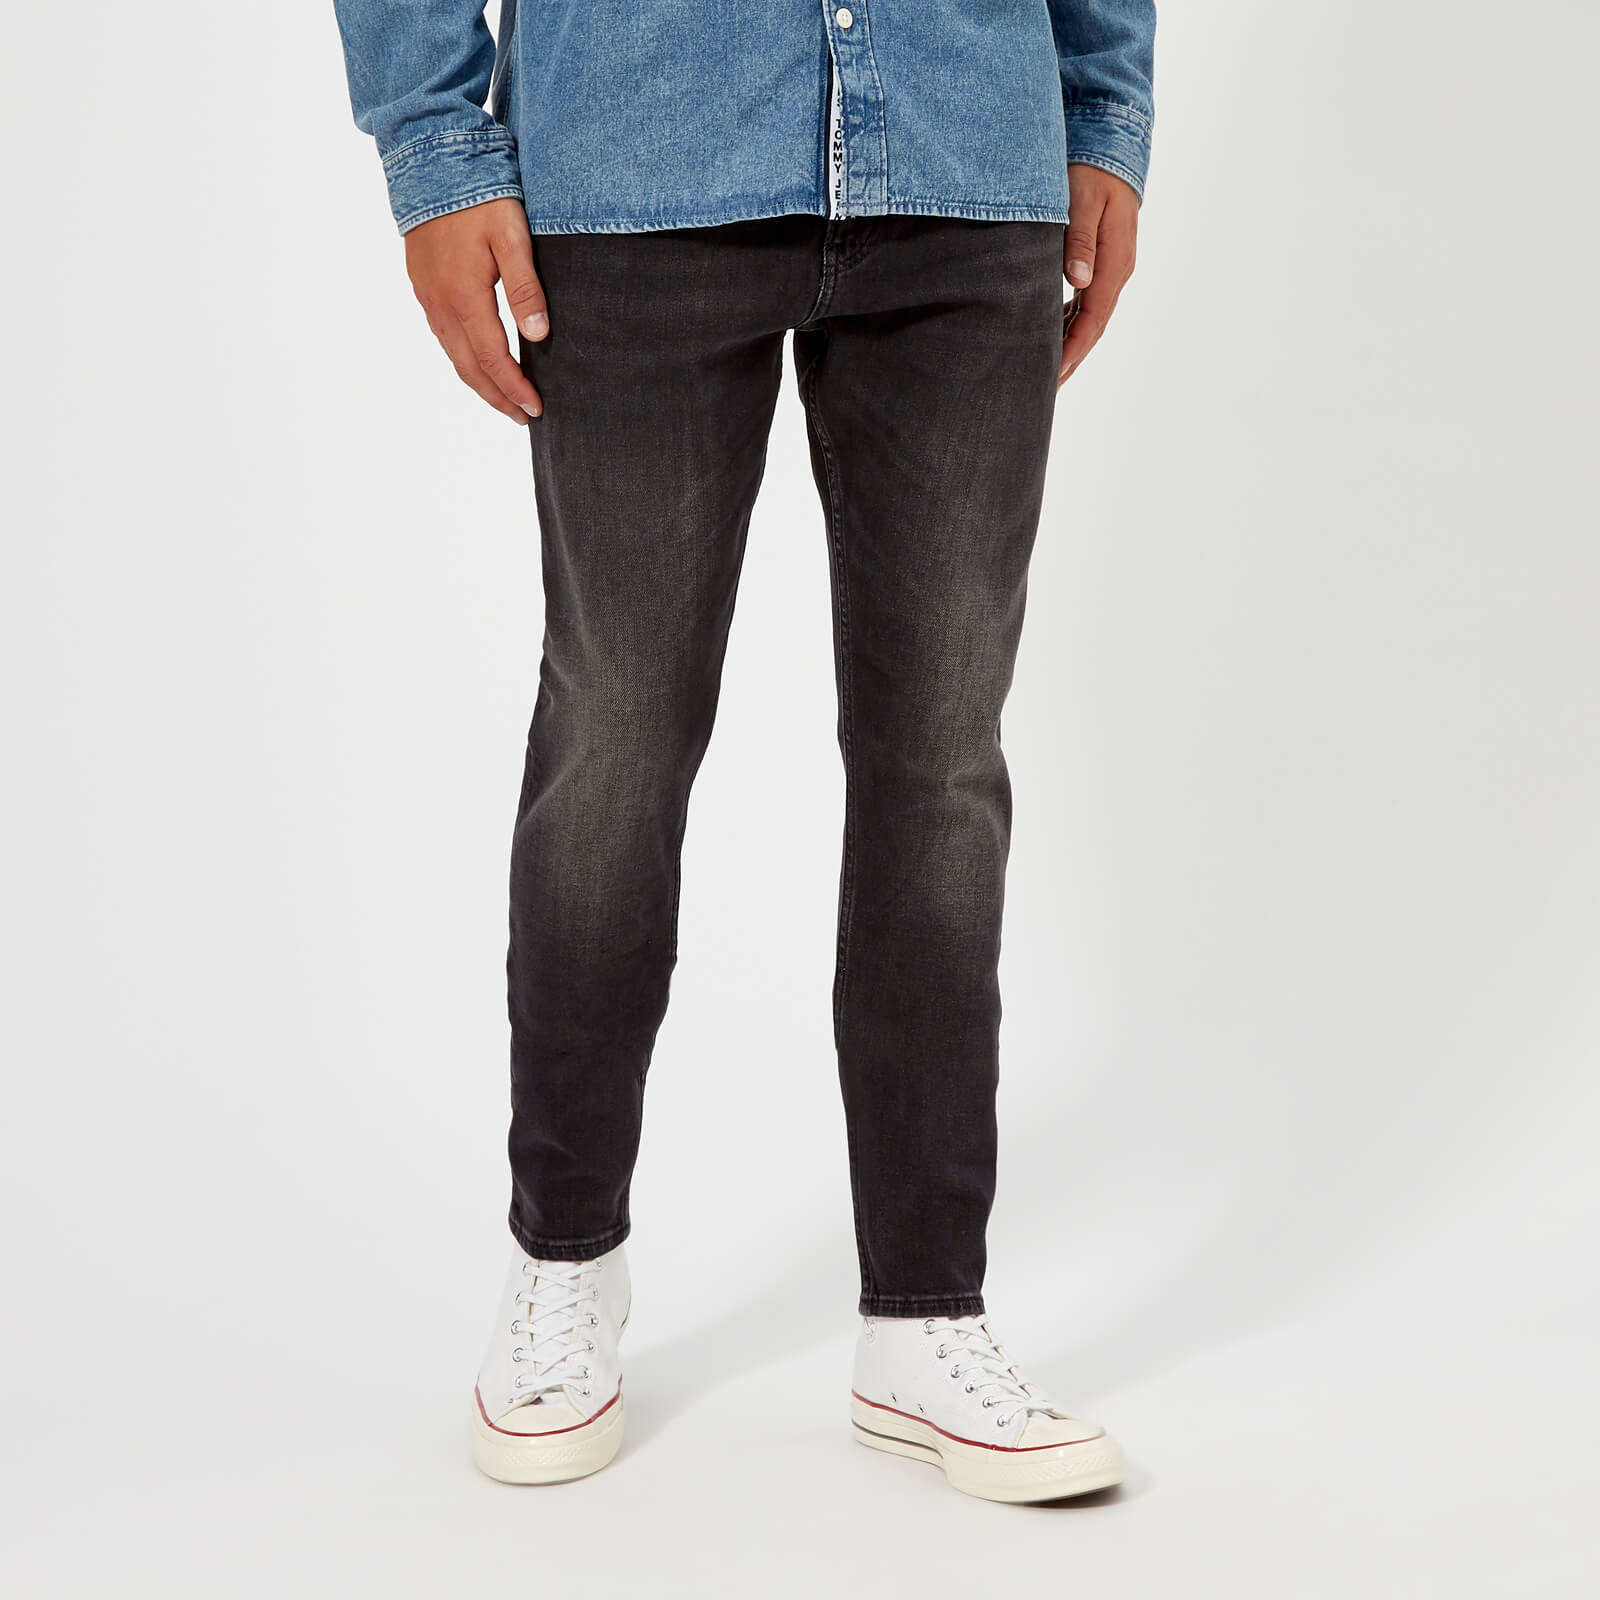 013897a73 Tommy Jeans Men's Modern Tapered TJ 1988 Jeans - Wooden Black Comfort Mens  Clothing | TheHut.com